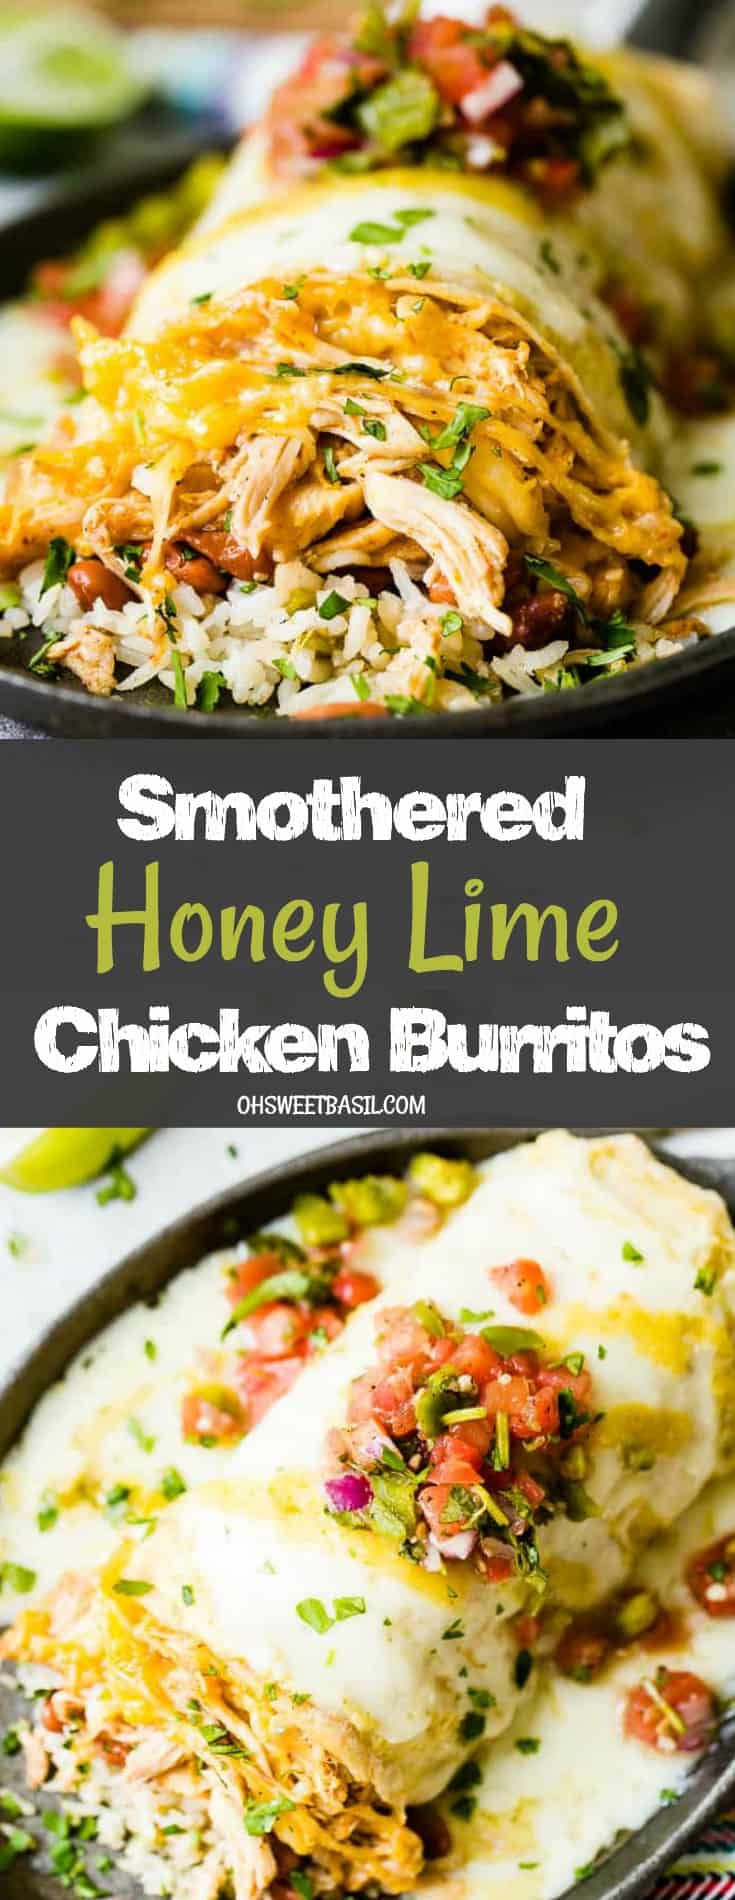 Smothered Honey Lime Chicken Burritos